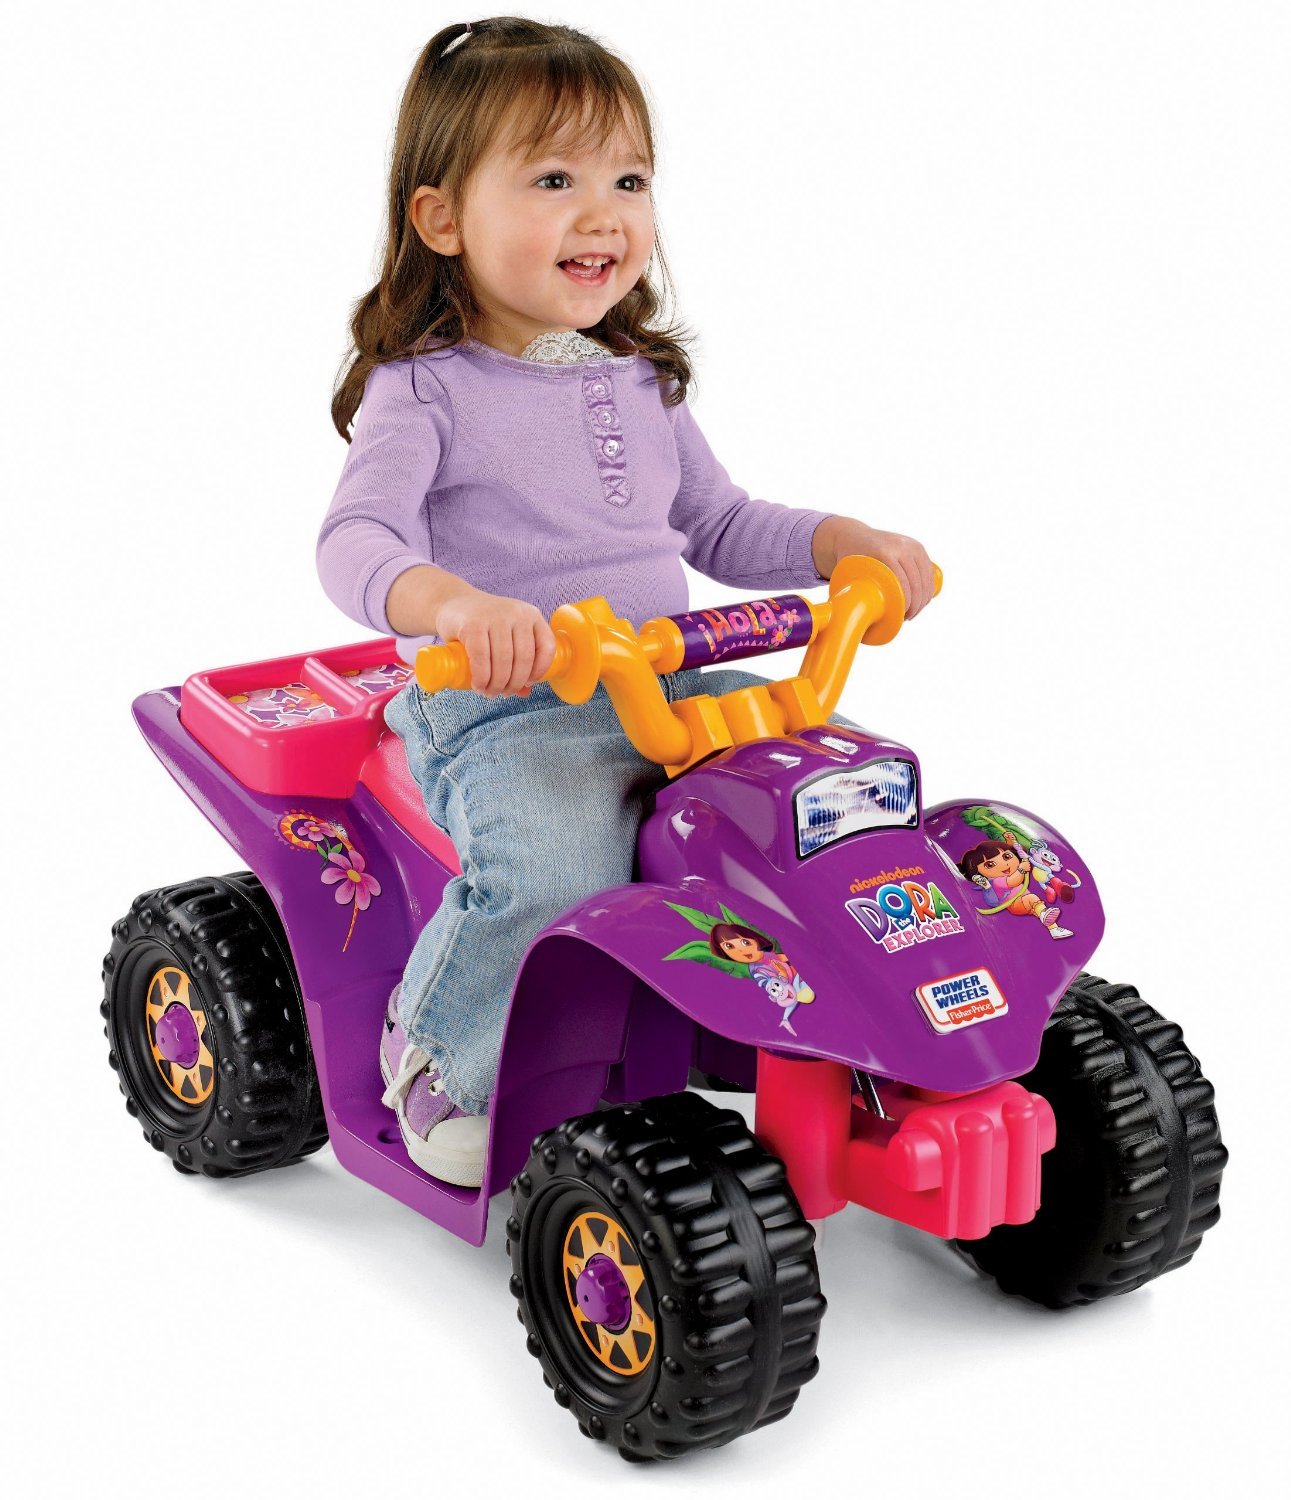 Toddler Girl Toys 2014 : Top best toys and gifts for year old girls